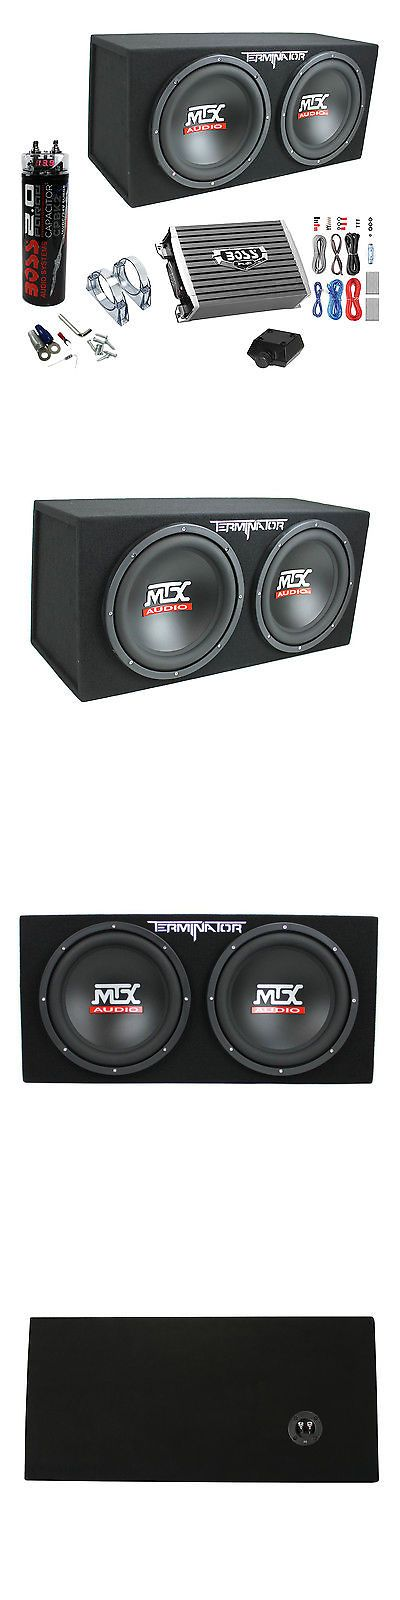 Speaker Sub Enclosures: Mtx Tne212d 12 1200W Dual Loaded Subwoofer Box + 1500W Amplifier + Capacitor -> BUY IT NOW ONLY: $229.95 on eBay!